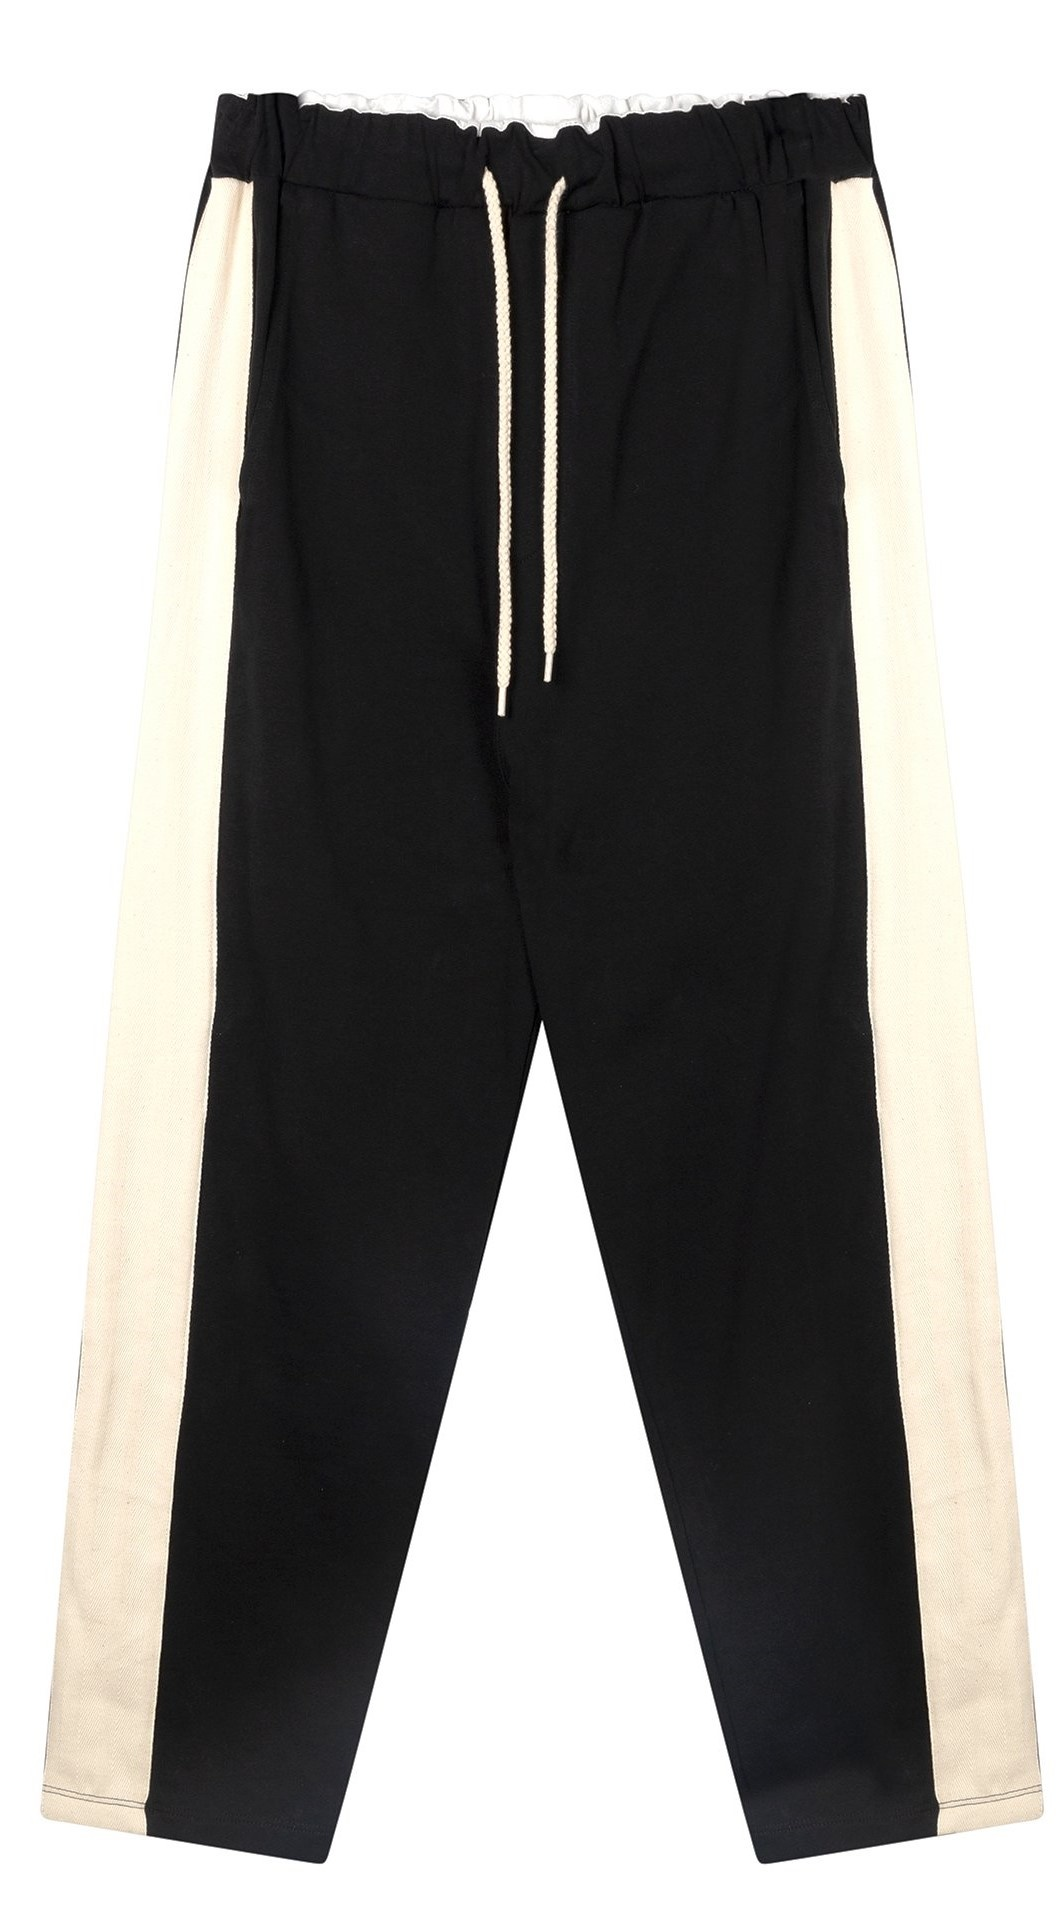 Broek straight pants smoking black-1